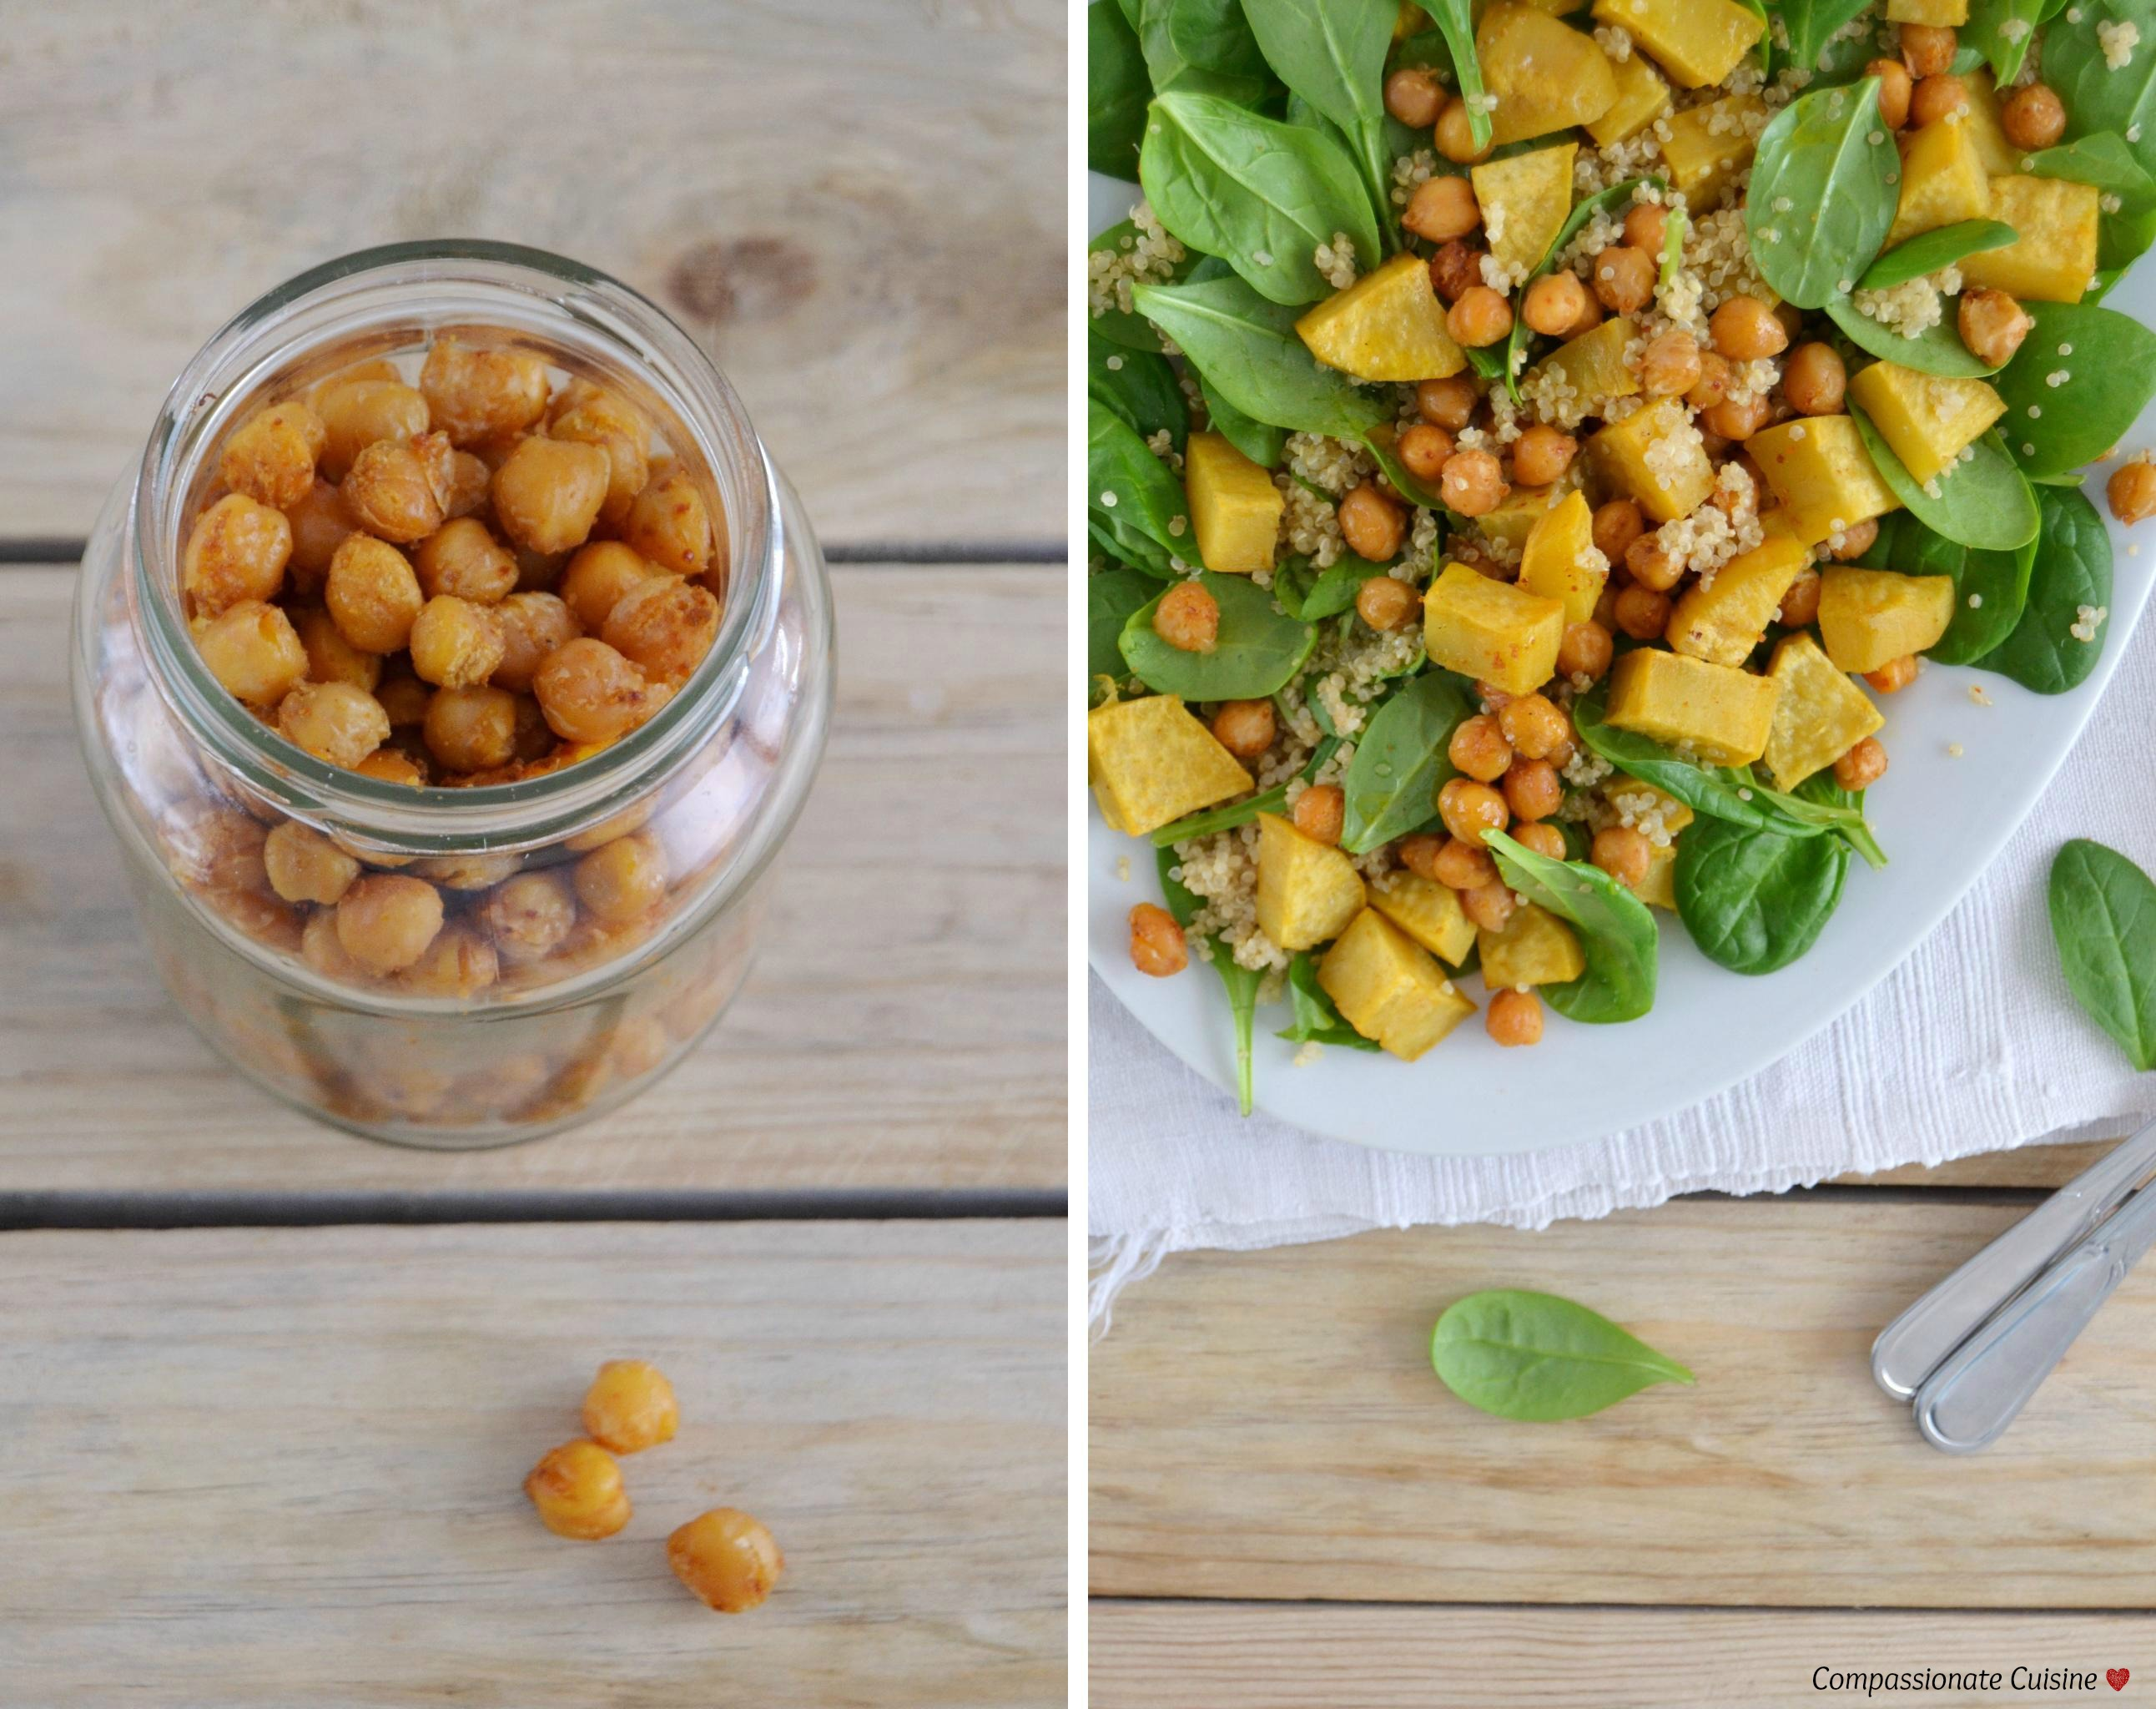 Roasted chickpea sweet potato salad